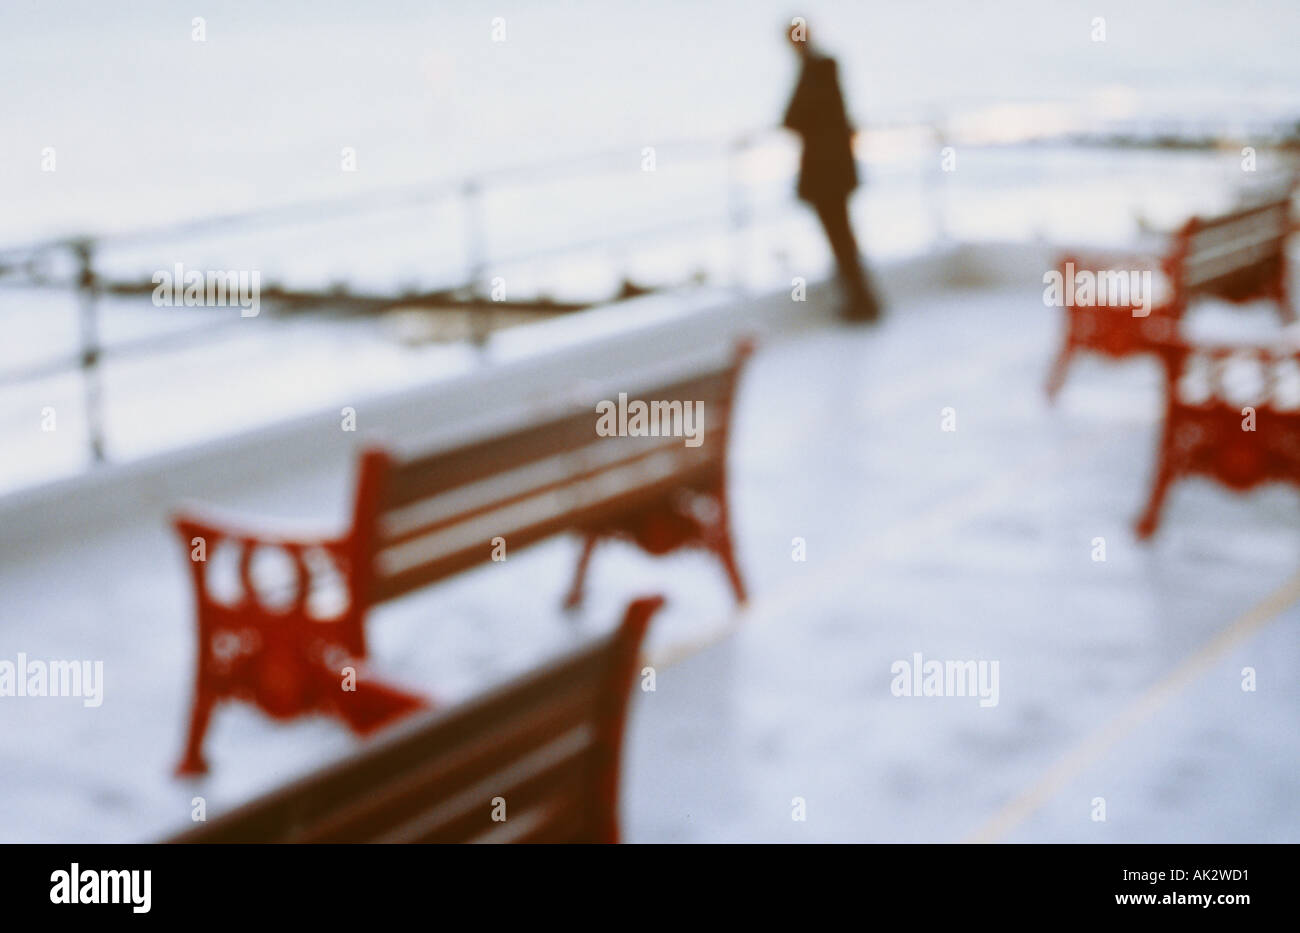 Impressionistic solitary figure leaning on railings surrounding empty bench seats and gazing out at a calm winter sea - Stock Image